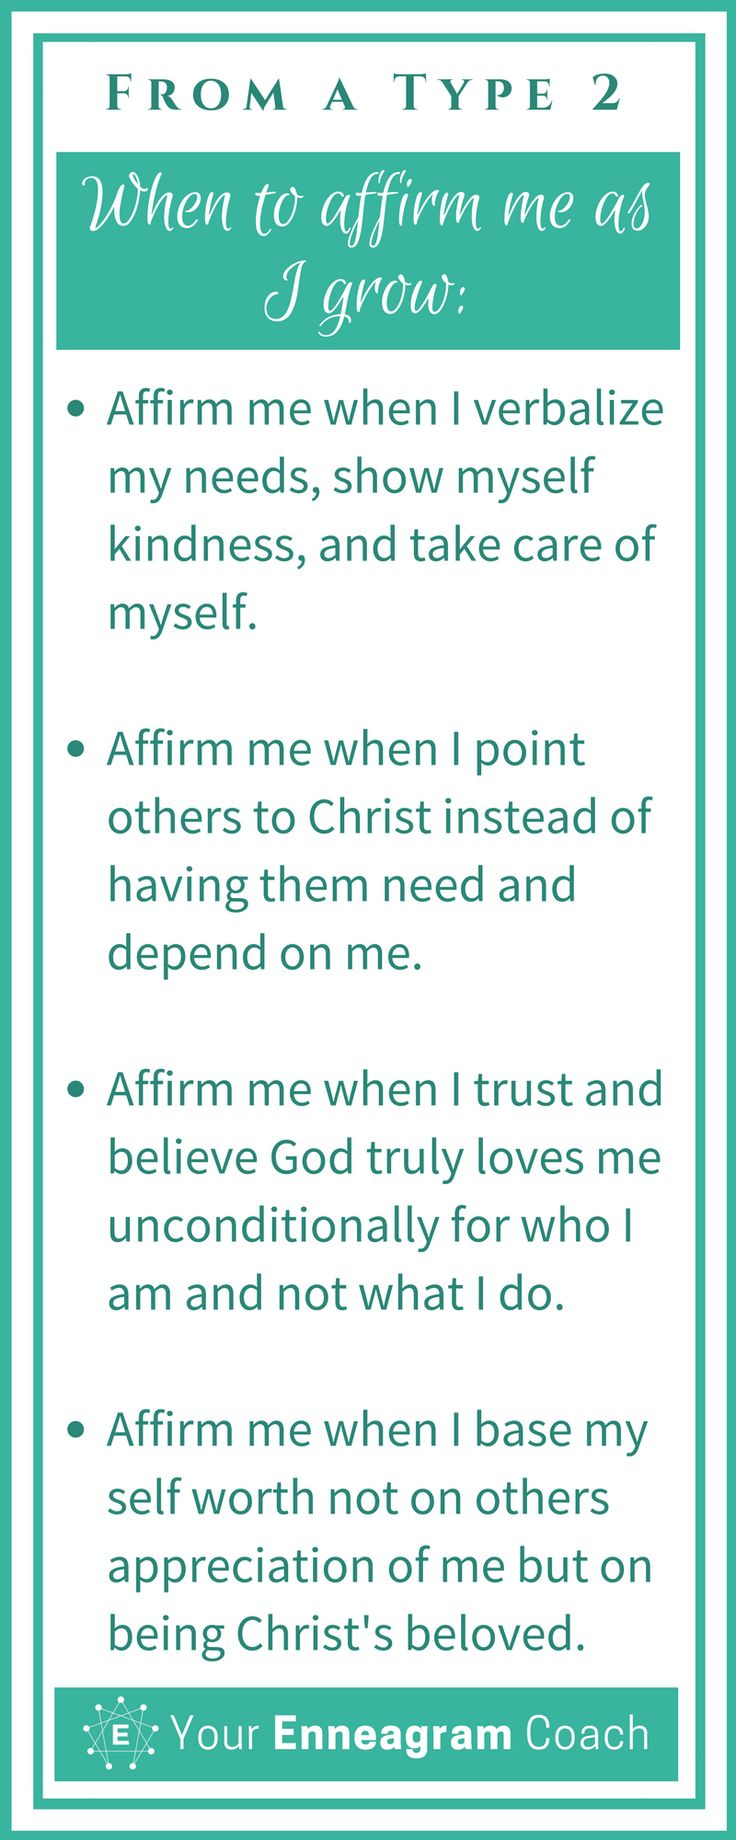 Ever wondered how to affirm the Type 2 person in your life? Here are some helpful suggestions so that they will truly feel affirmed from you. Bless them today with one of these affirmations. Beth McCord Your Enneagram Coach